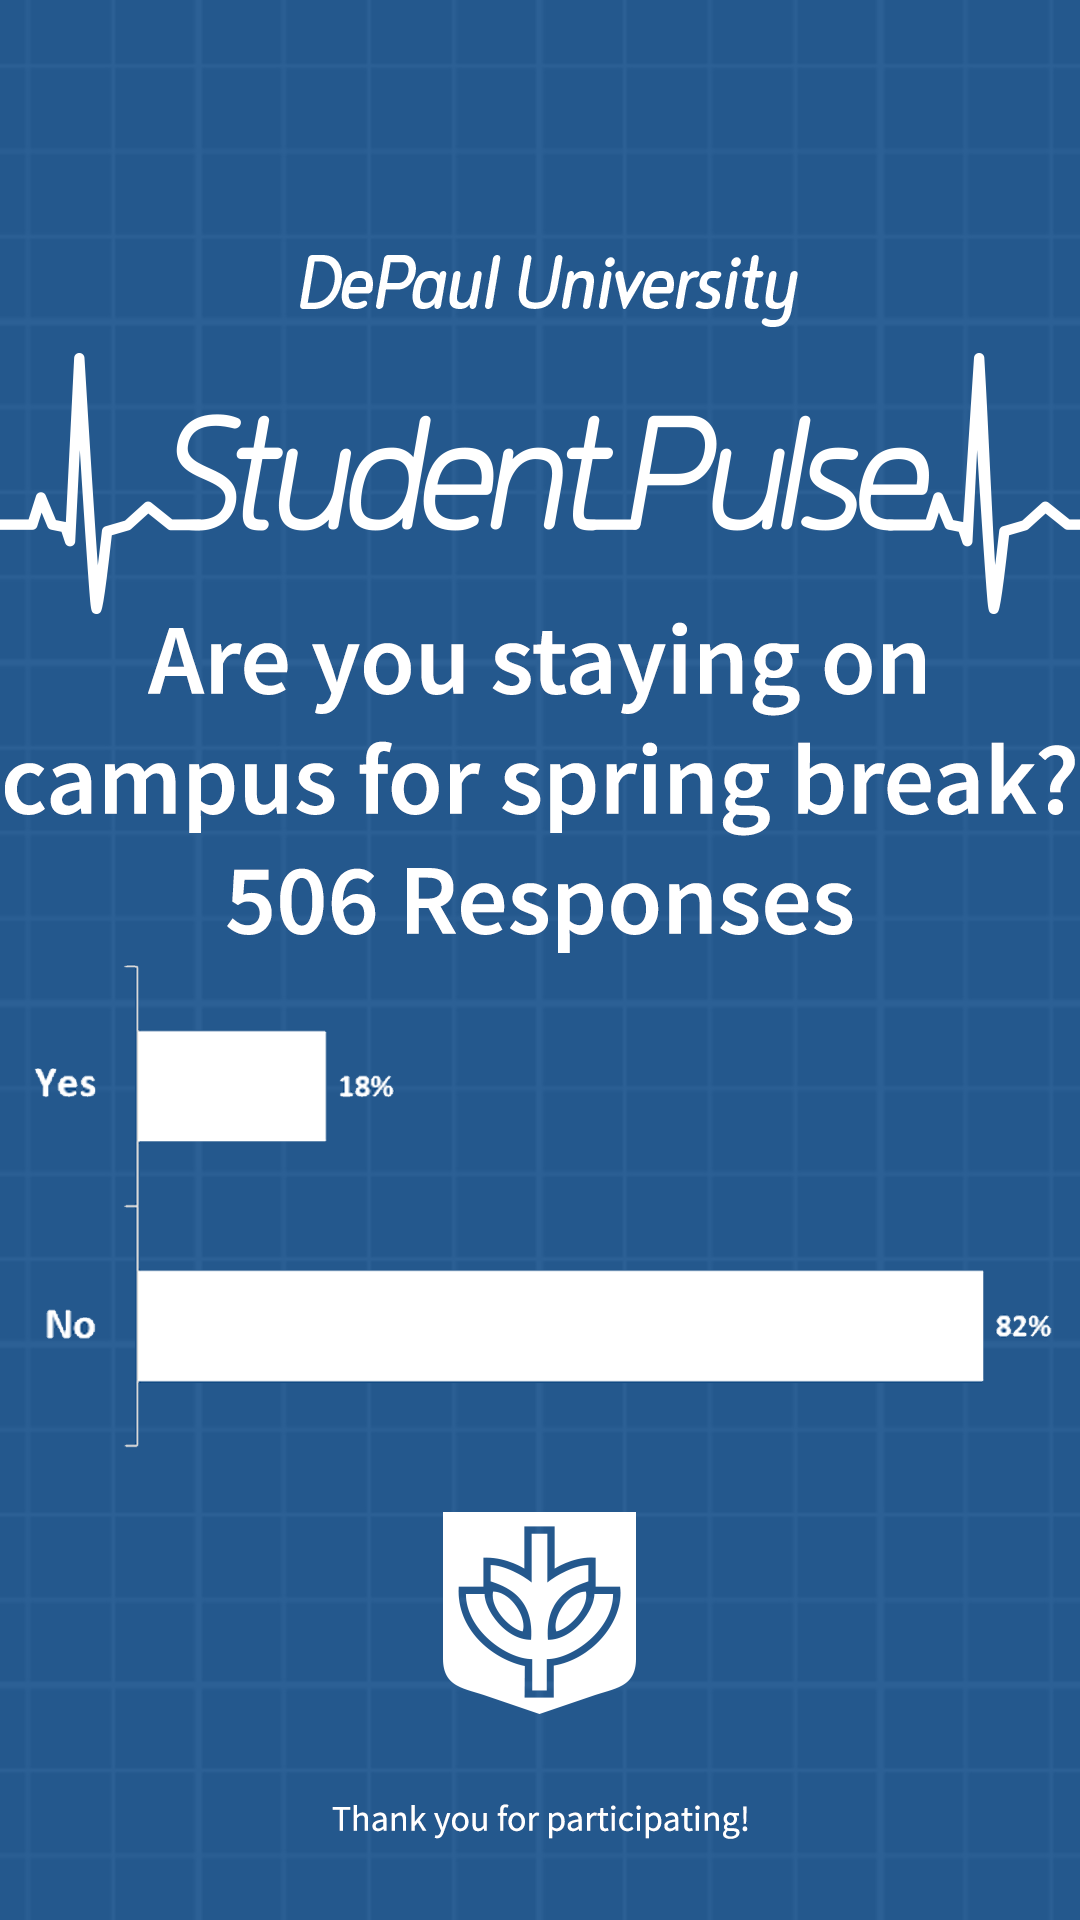 Are you staying on campus for spring break?